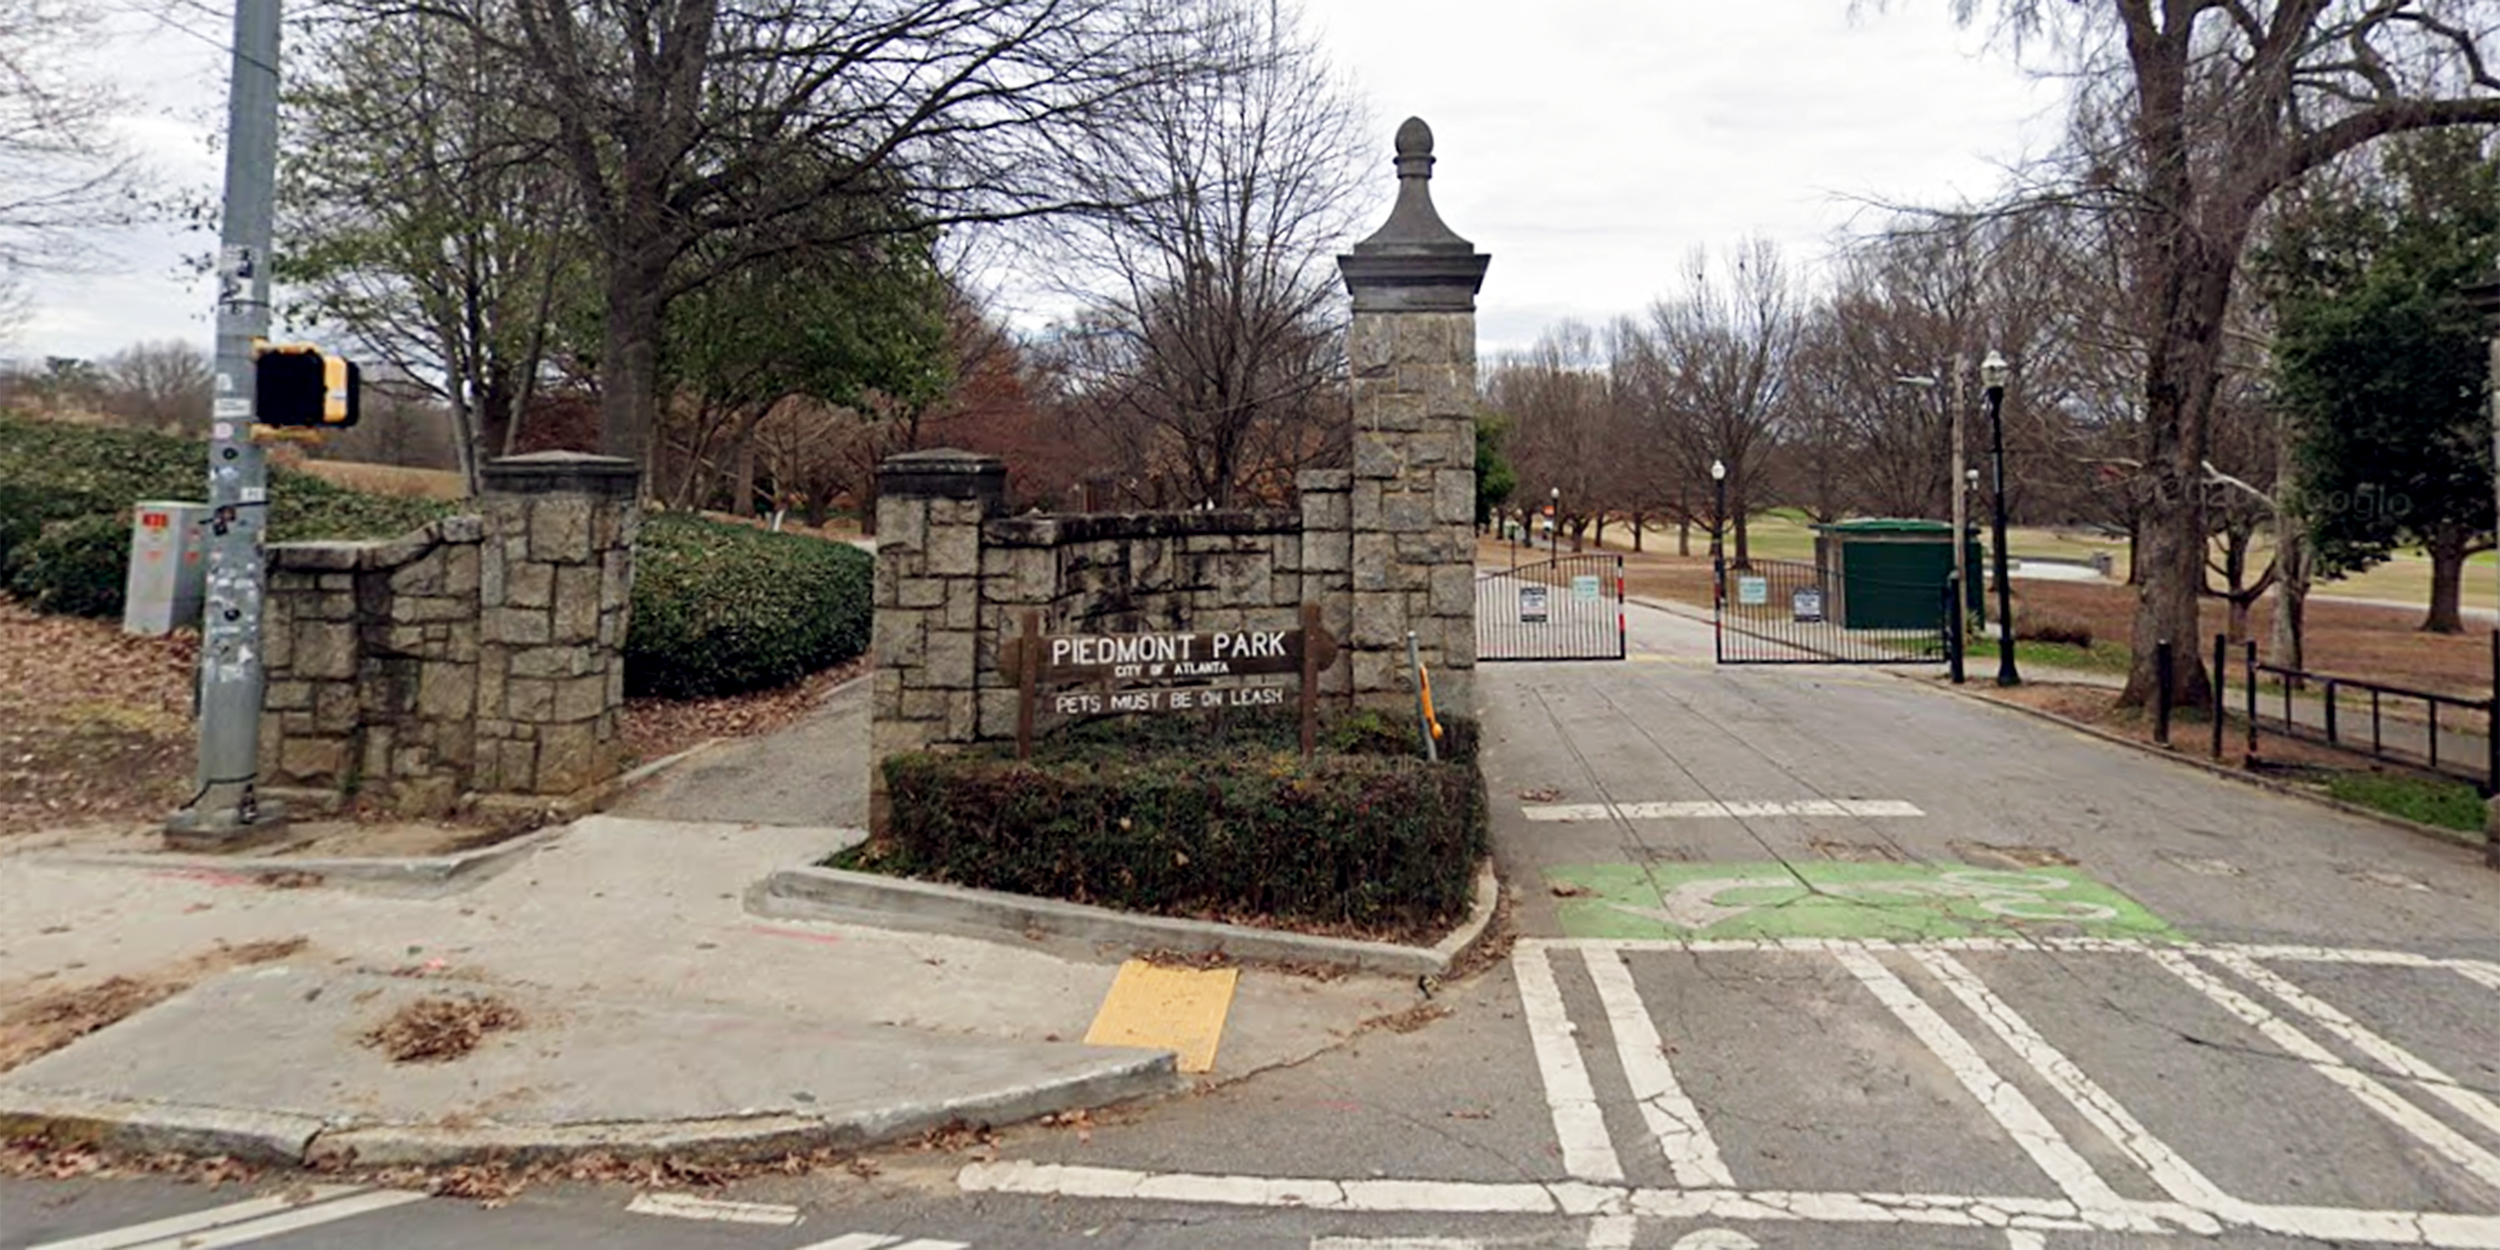 Woman found stabbed to death in 'gruesome scene' at iconic Atlanta park, police say